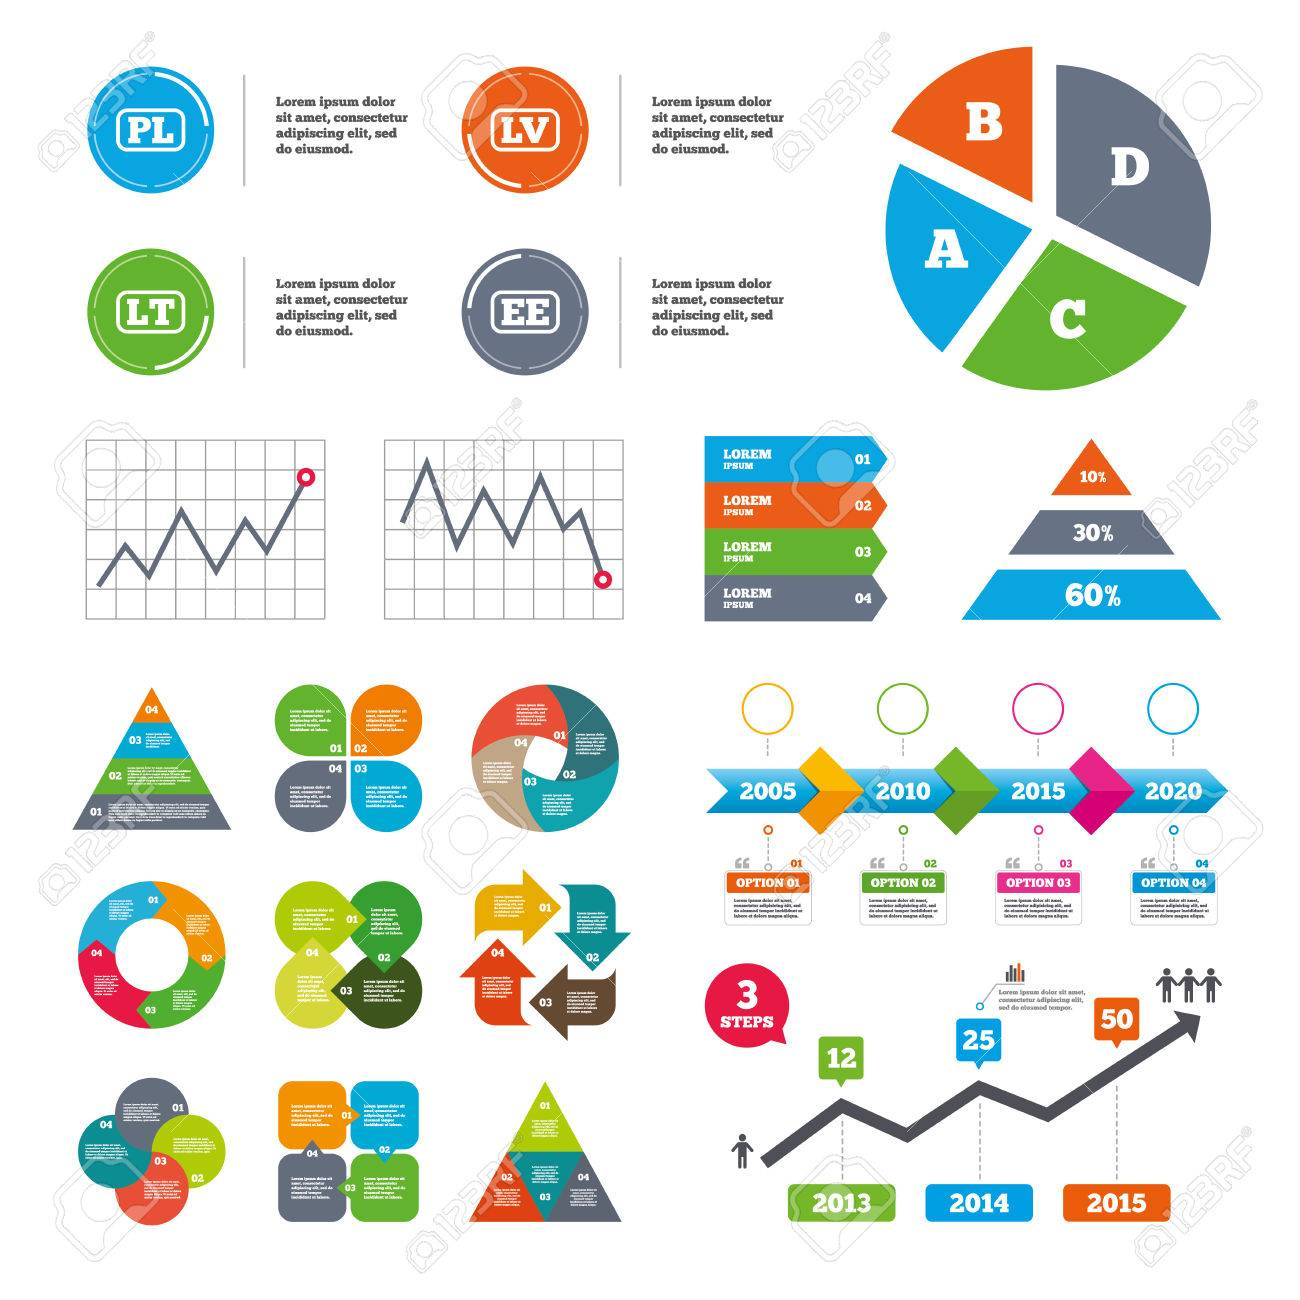 hight resolution of data pie chart and graphs language icons pl lv lt and ee